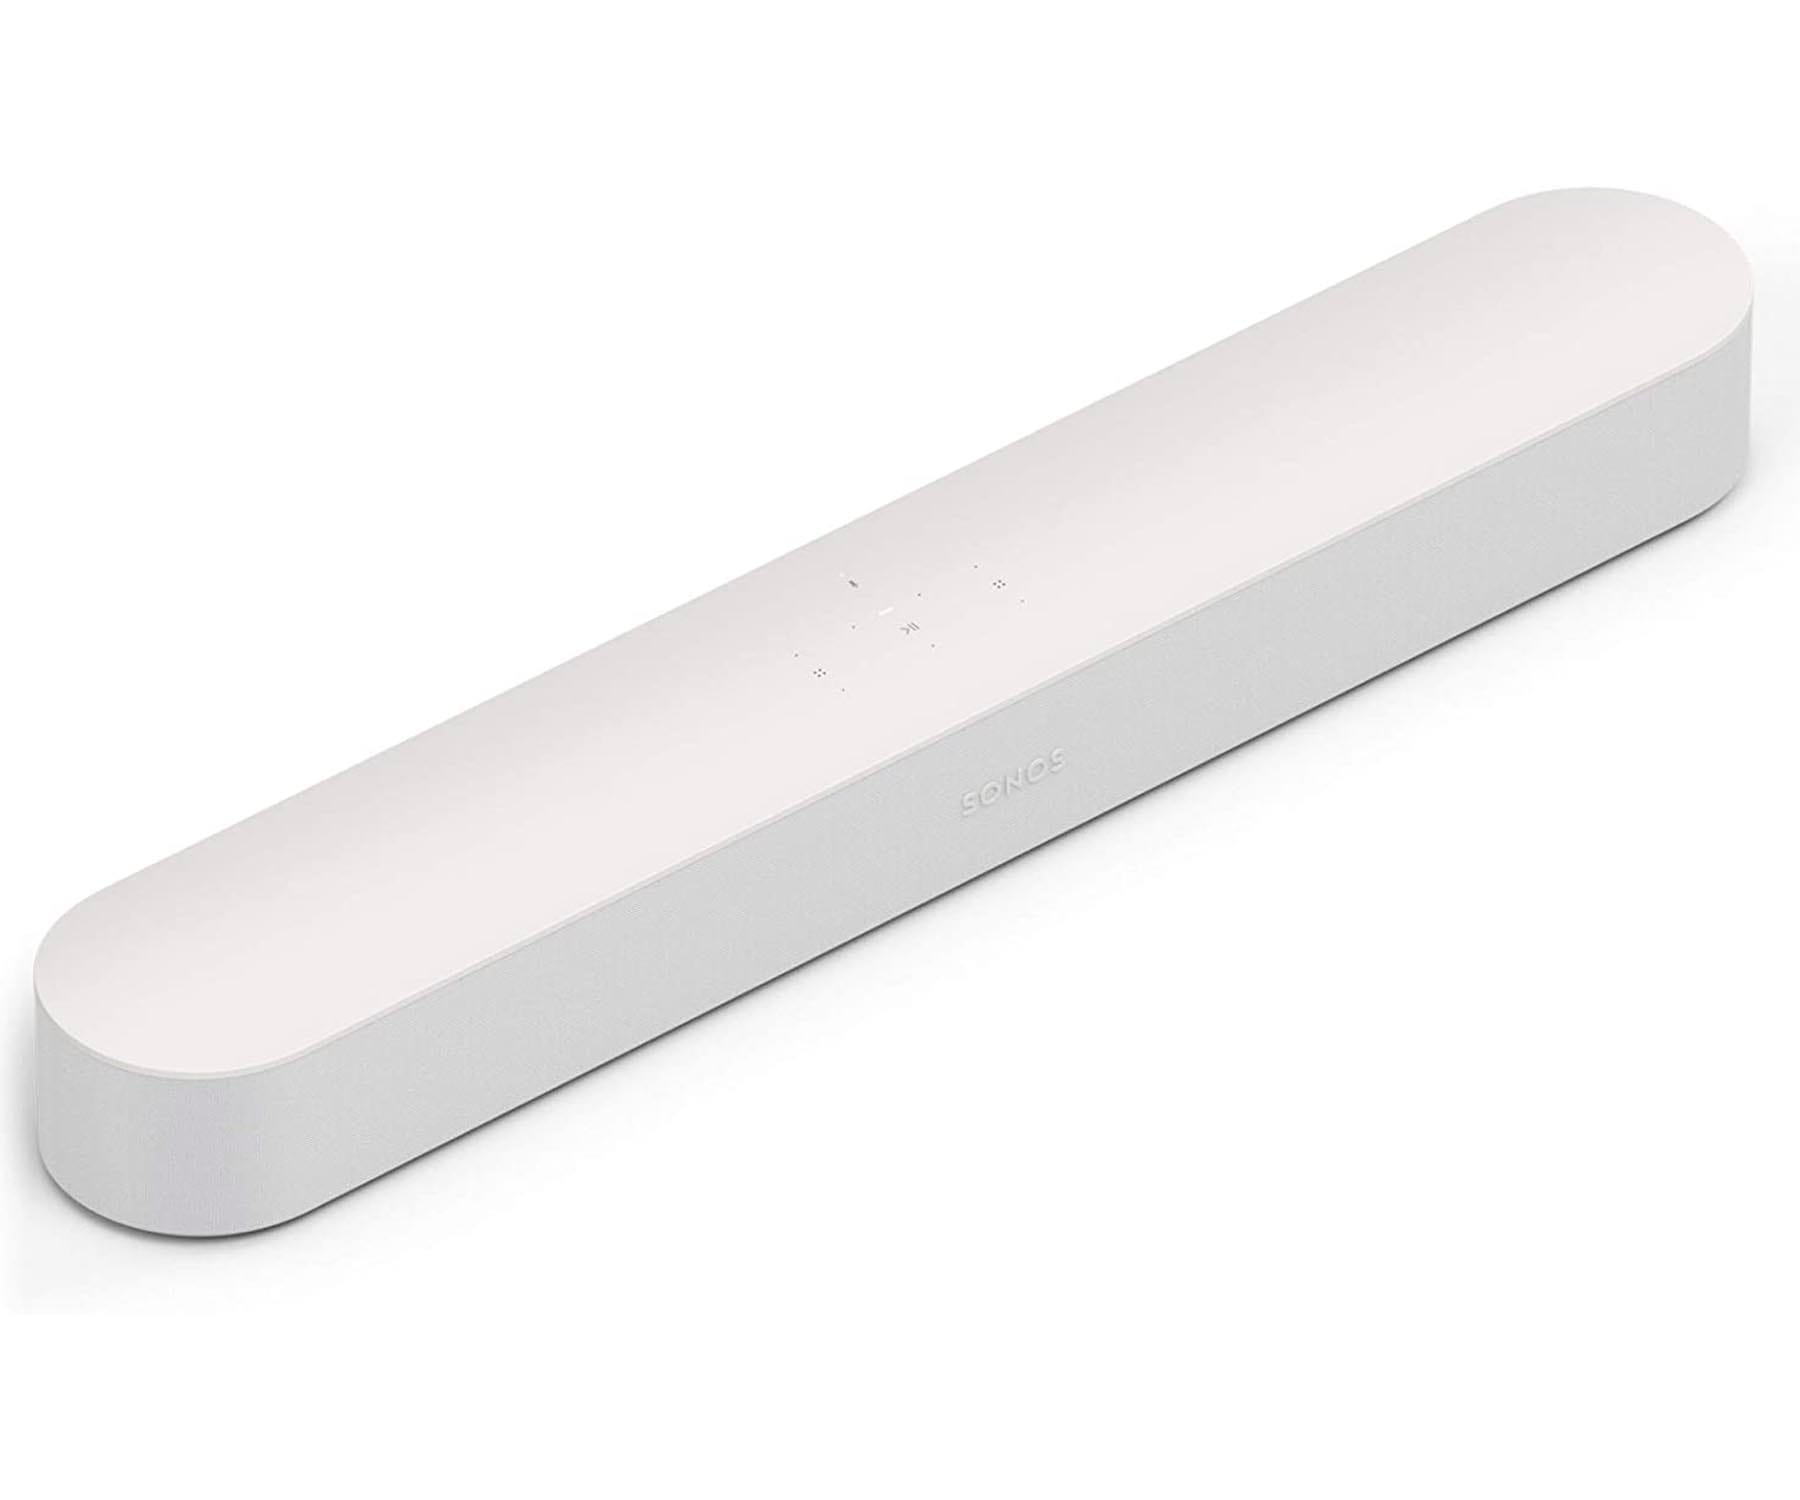 SONOS BEAM BLANCO BARRA DE SONIDO INTELIGENTE CON AIRPLAY 2 DE APPLE ASISTENTE DE GOOGLE AMAZON ALEXA